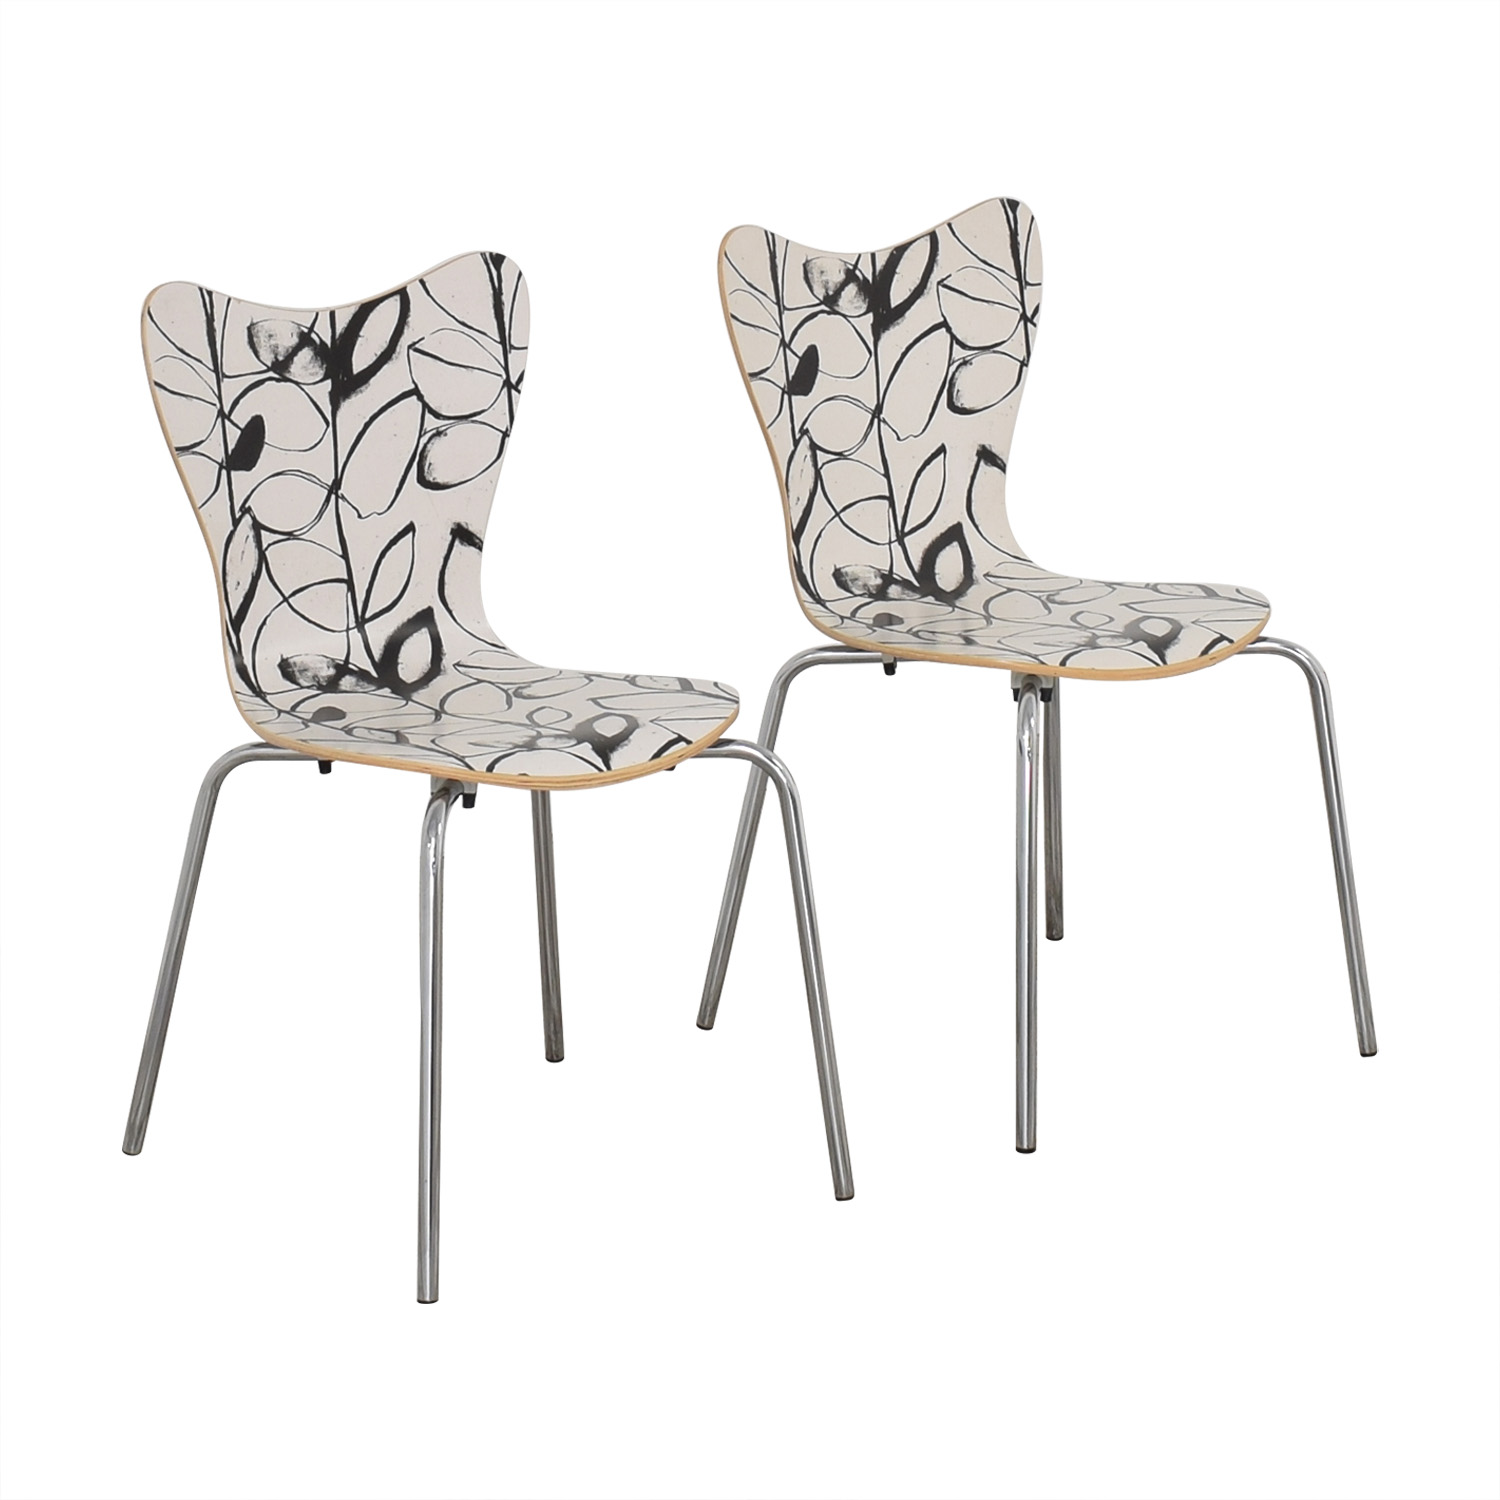 West Elm West Elm Decorative Dining Chairs coupon